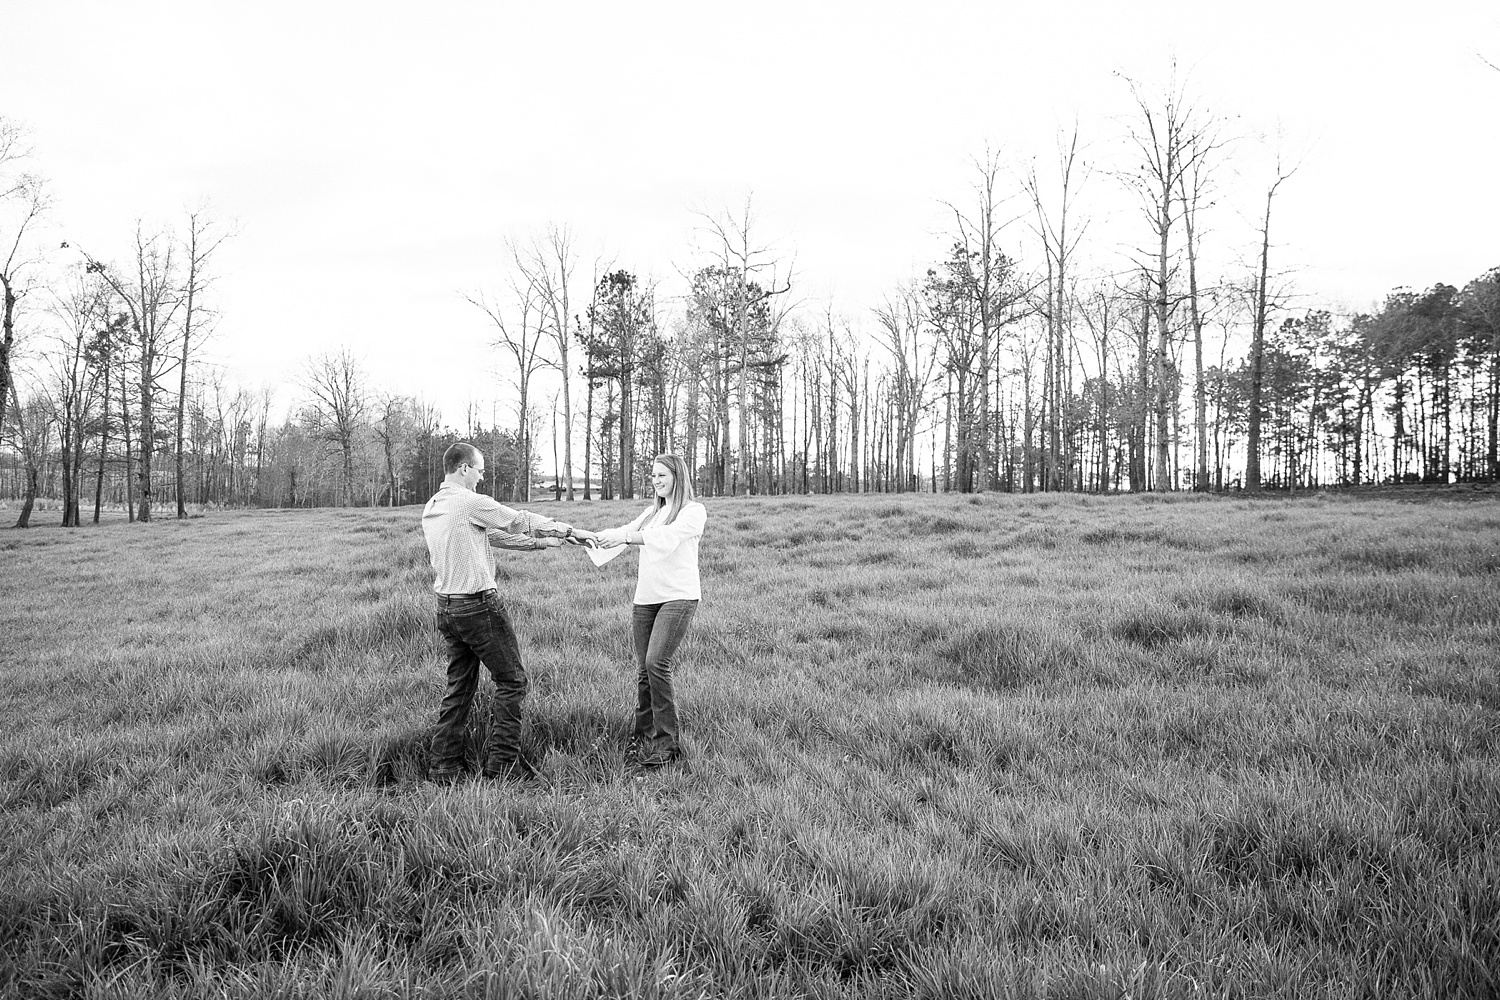 couple dances in a wide open grassy pasture